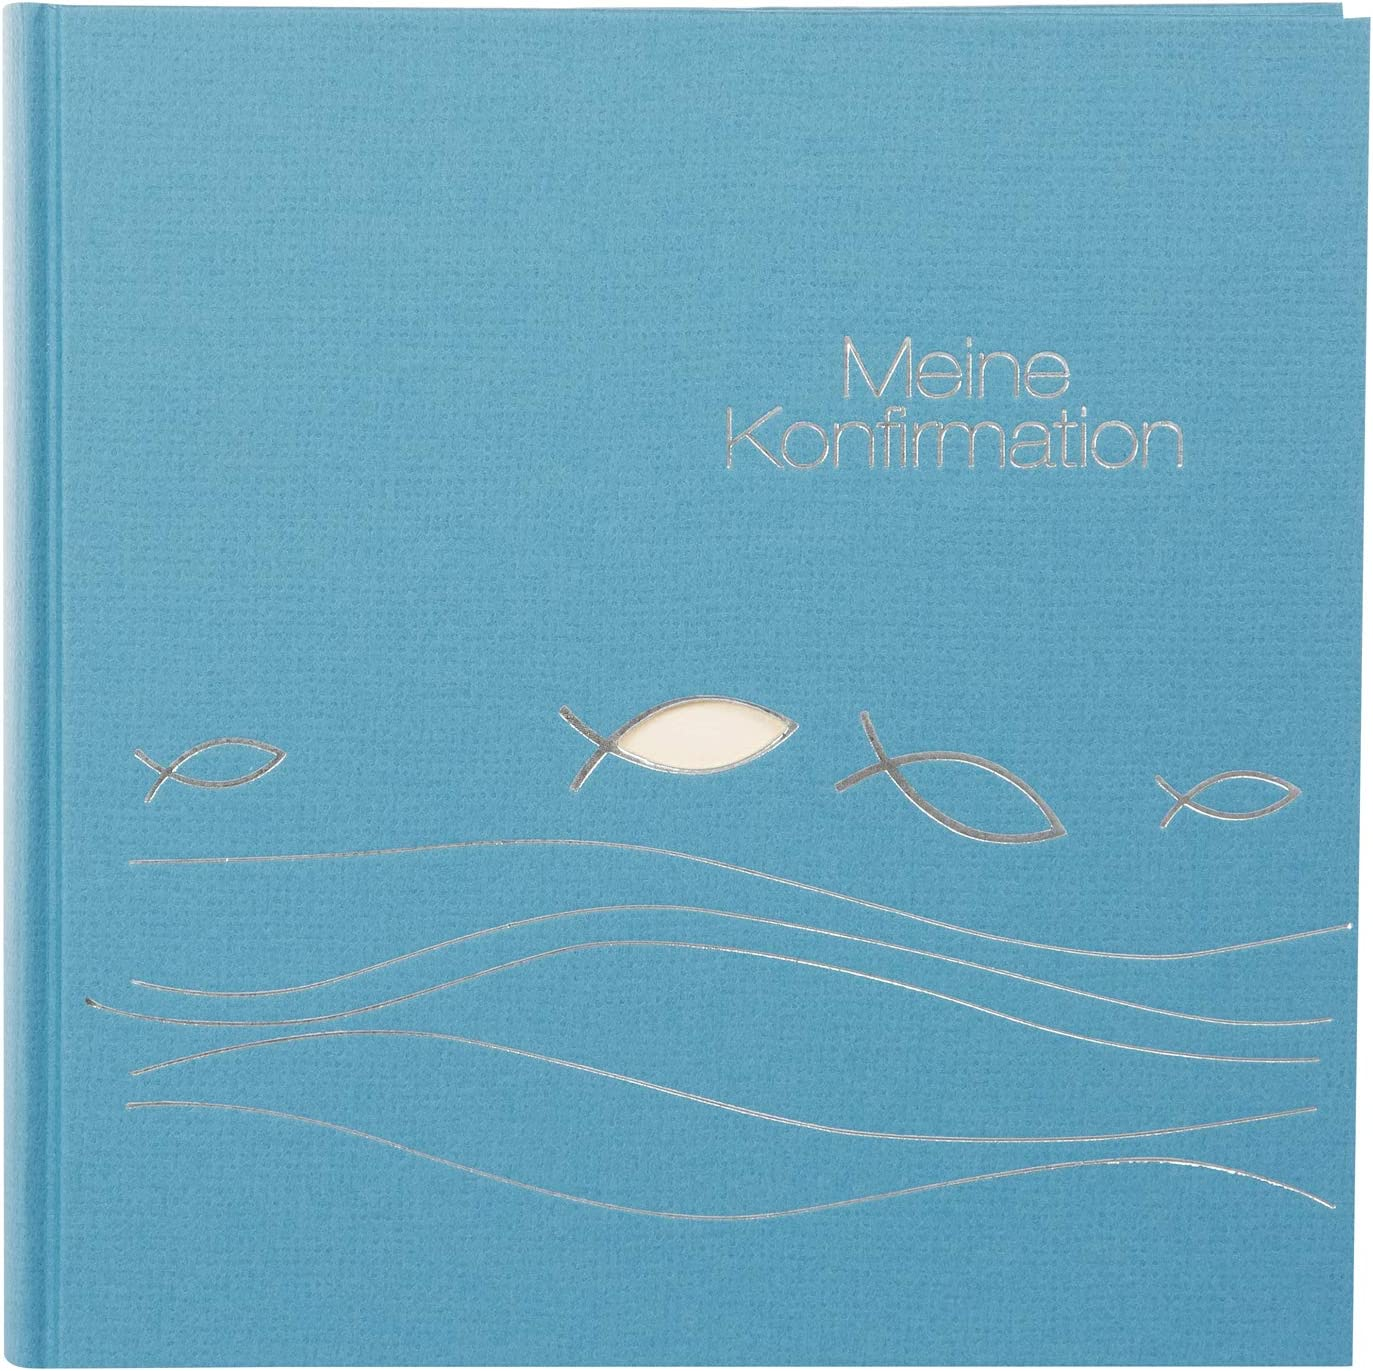 Goldbuch Max 79% OFF All stores are sold Photo Album for Confirmation Ichthys W cm x 25 60